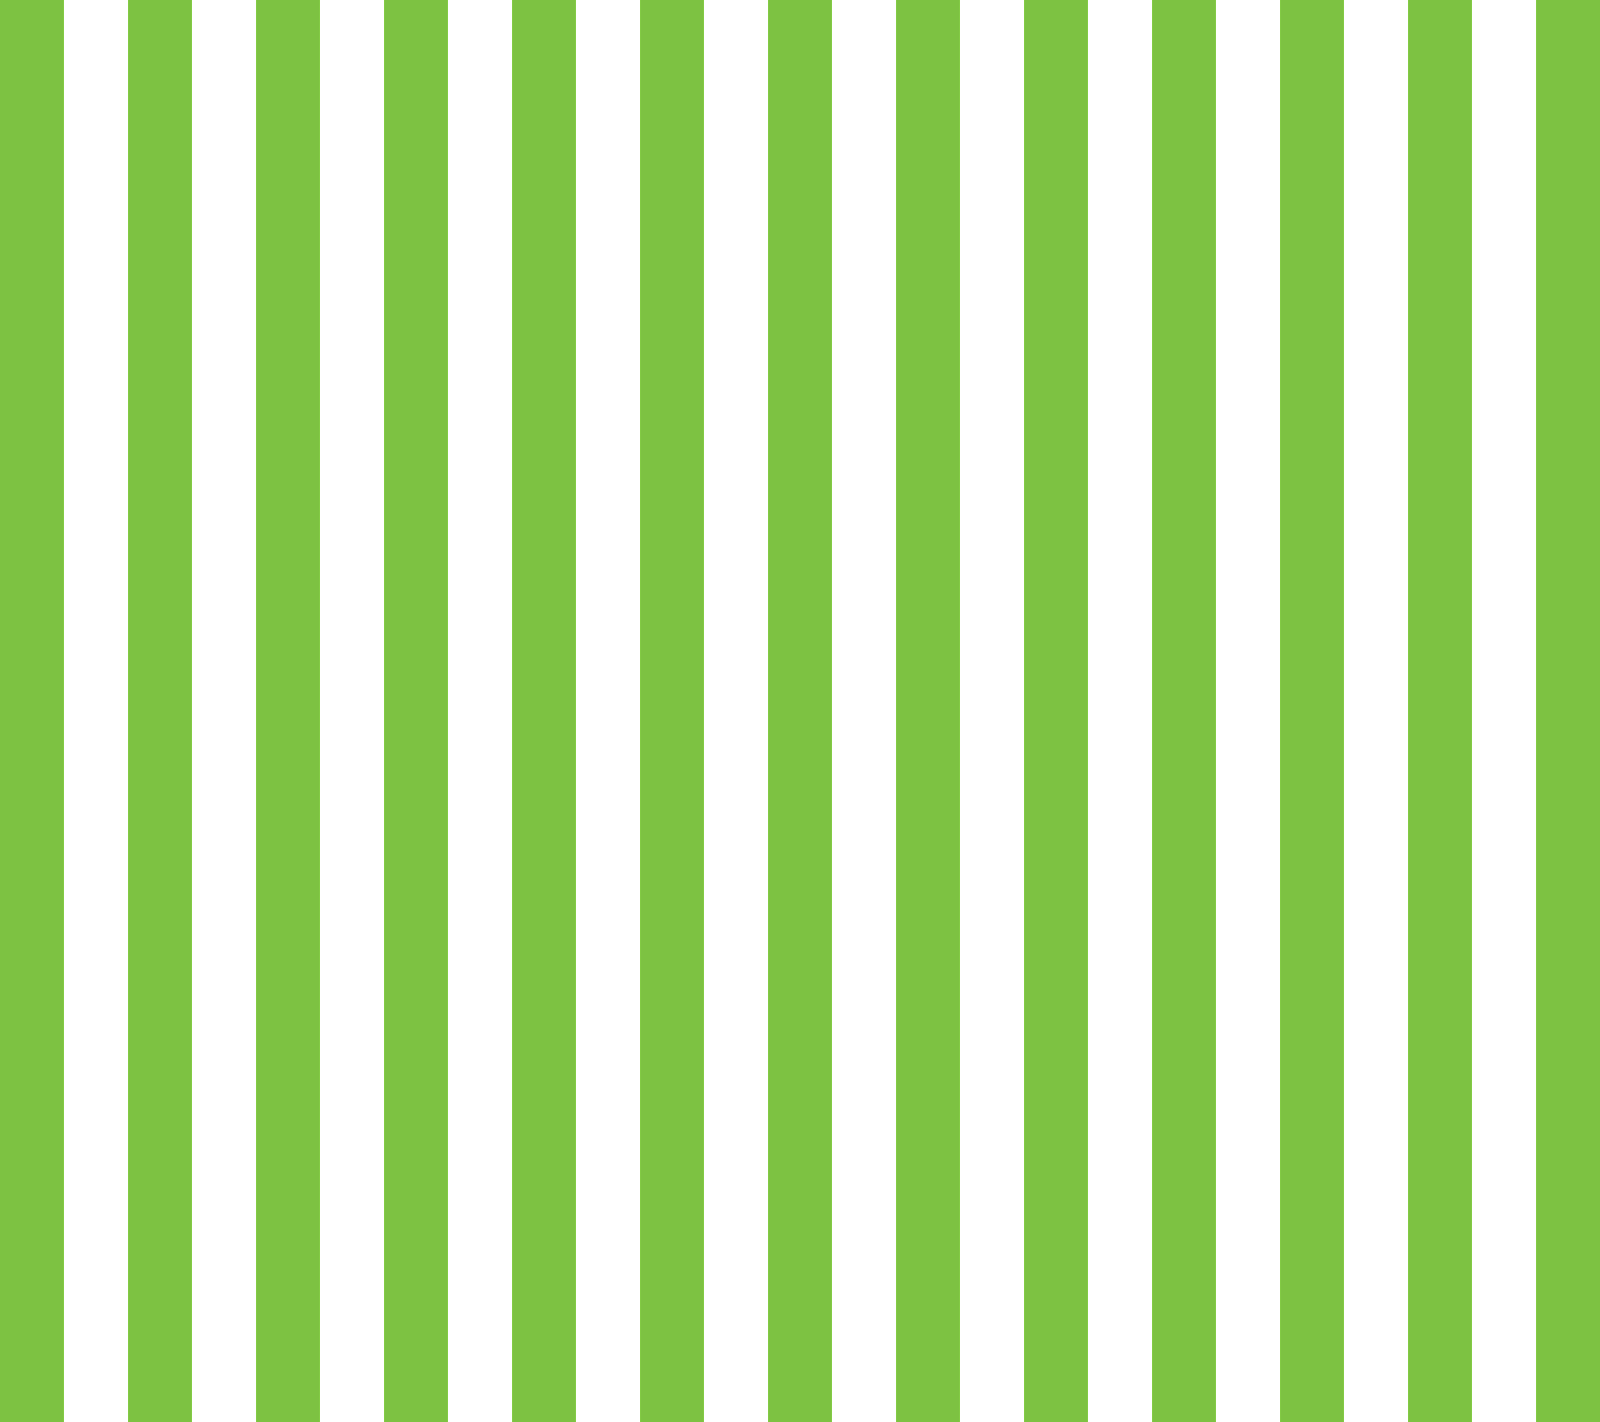 striped vector pin stripe